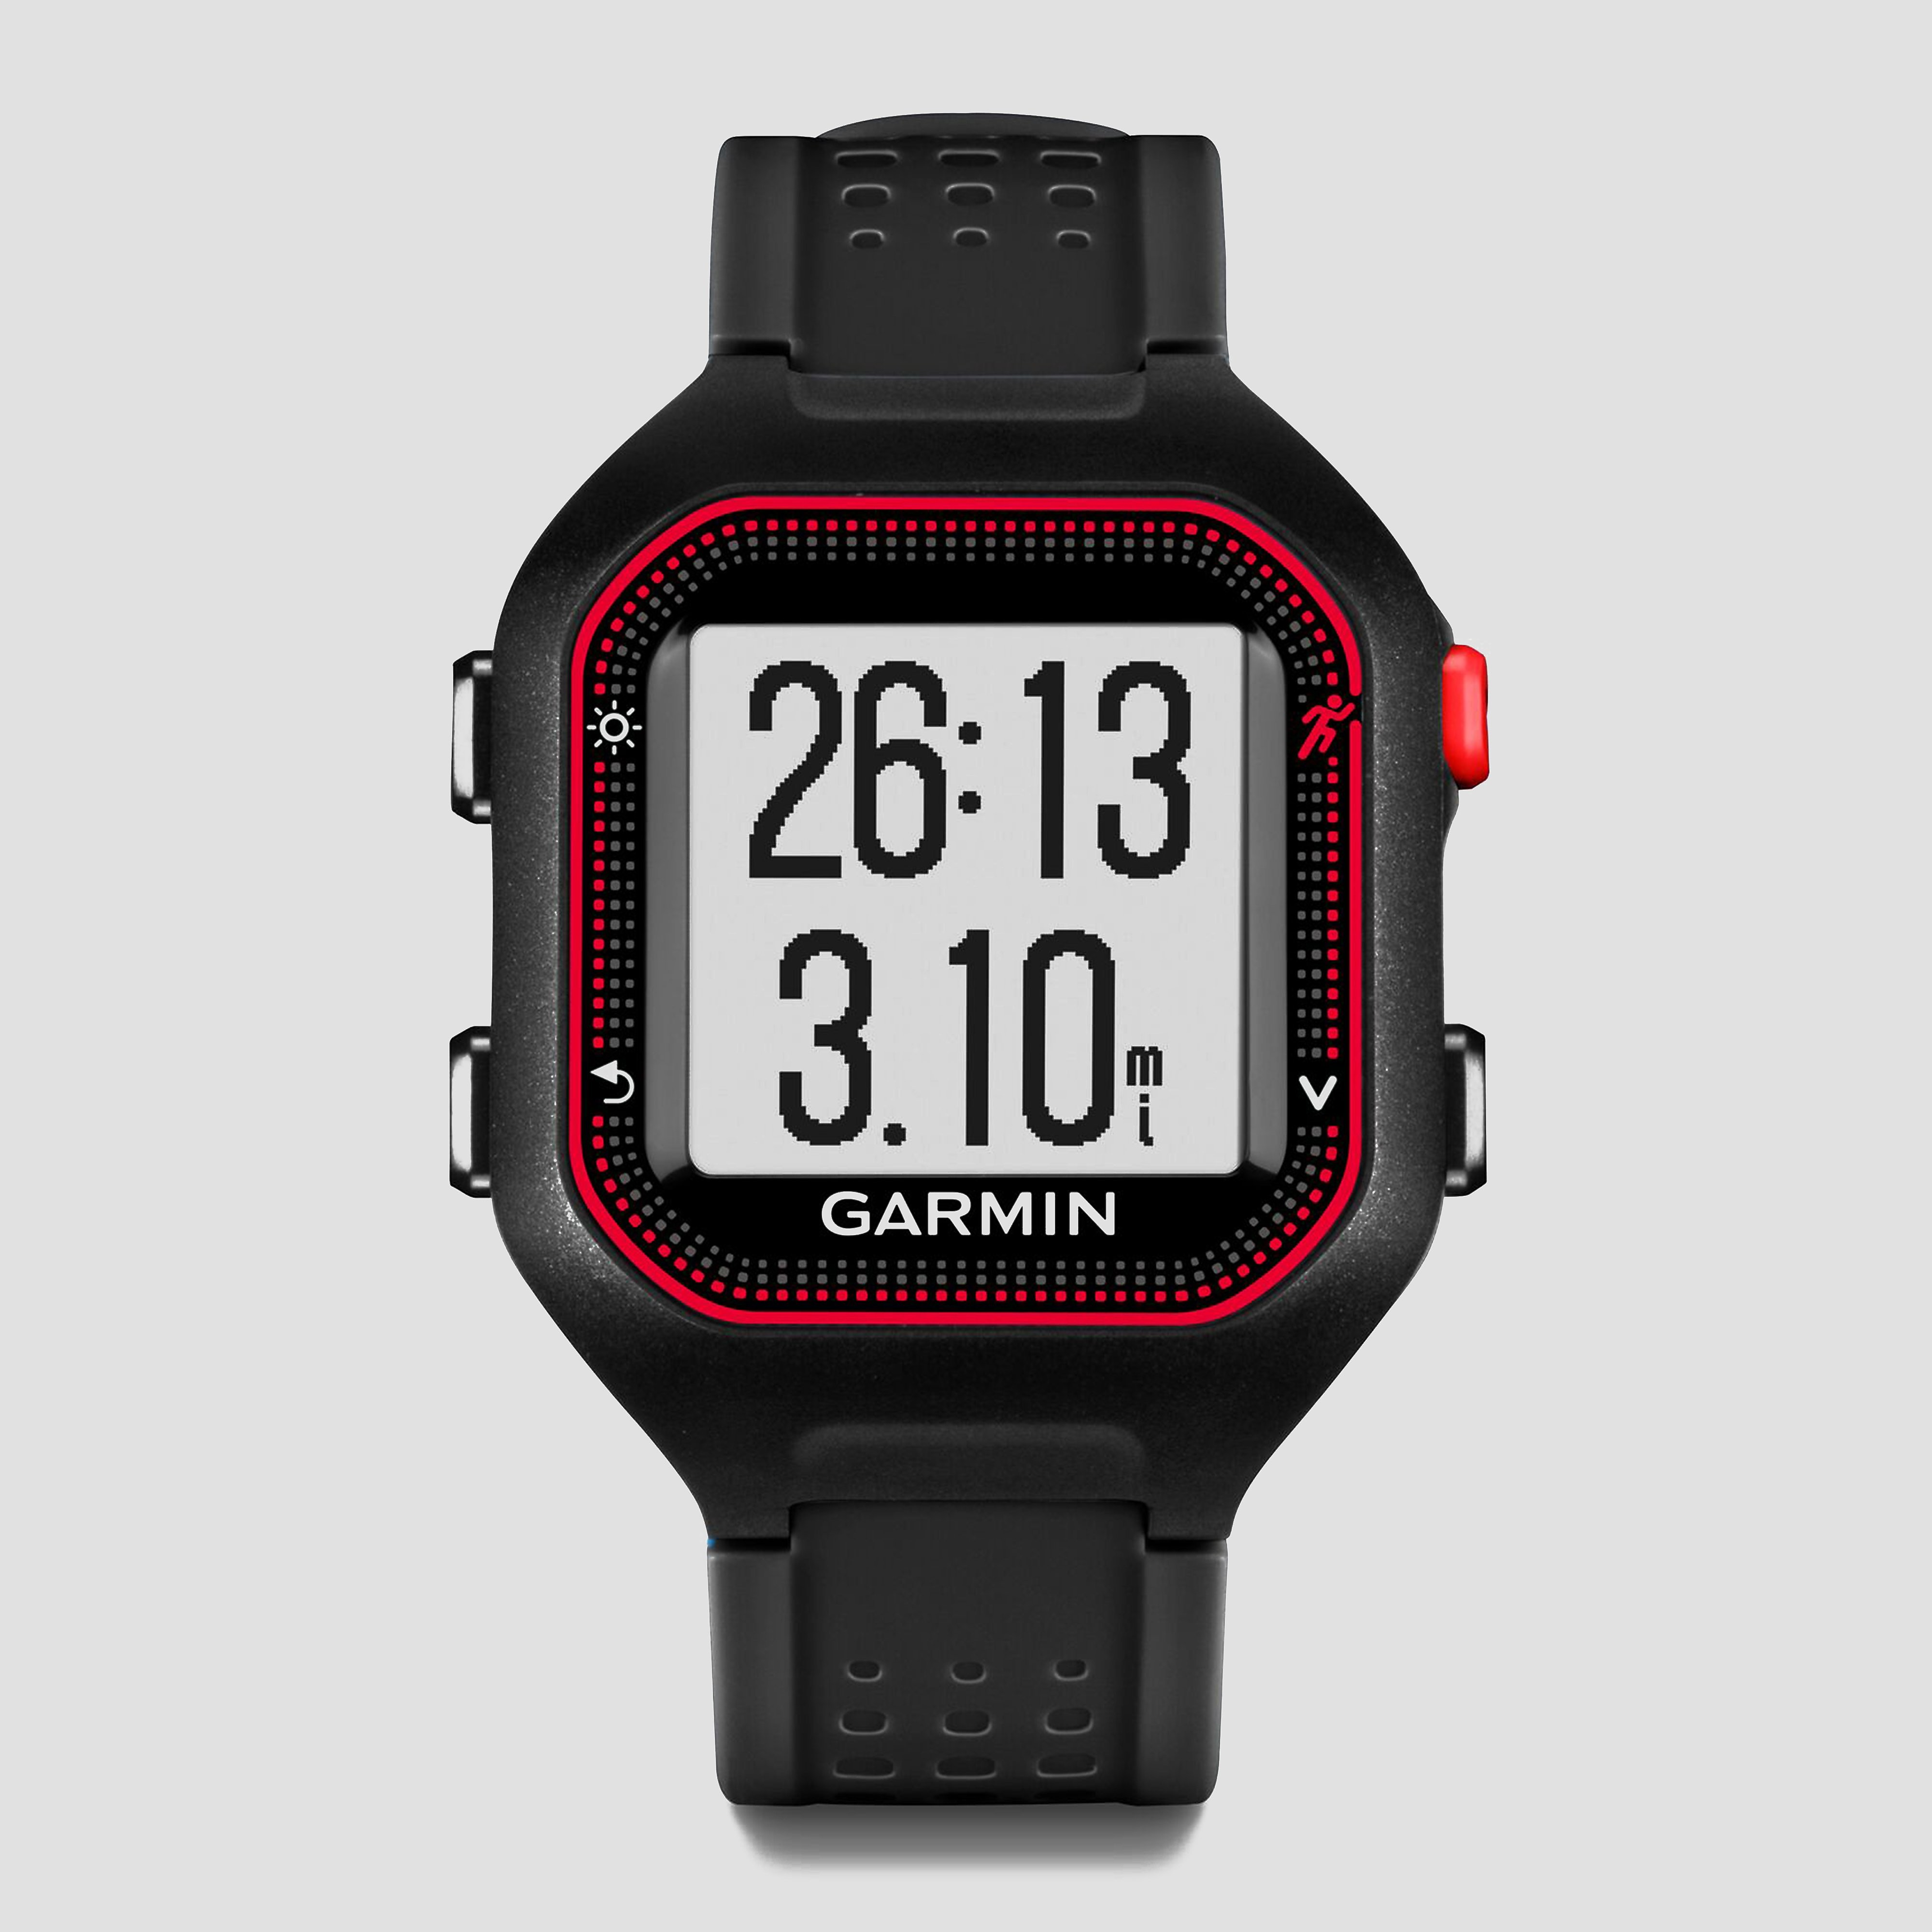 GARMIN FORERUNNER 25 MEN